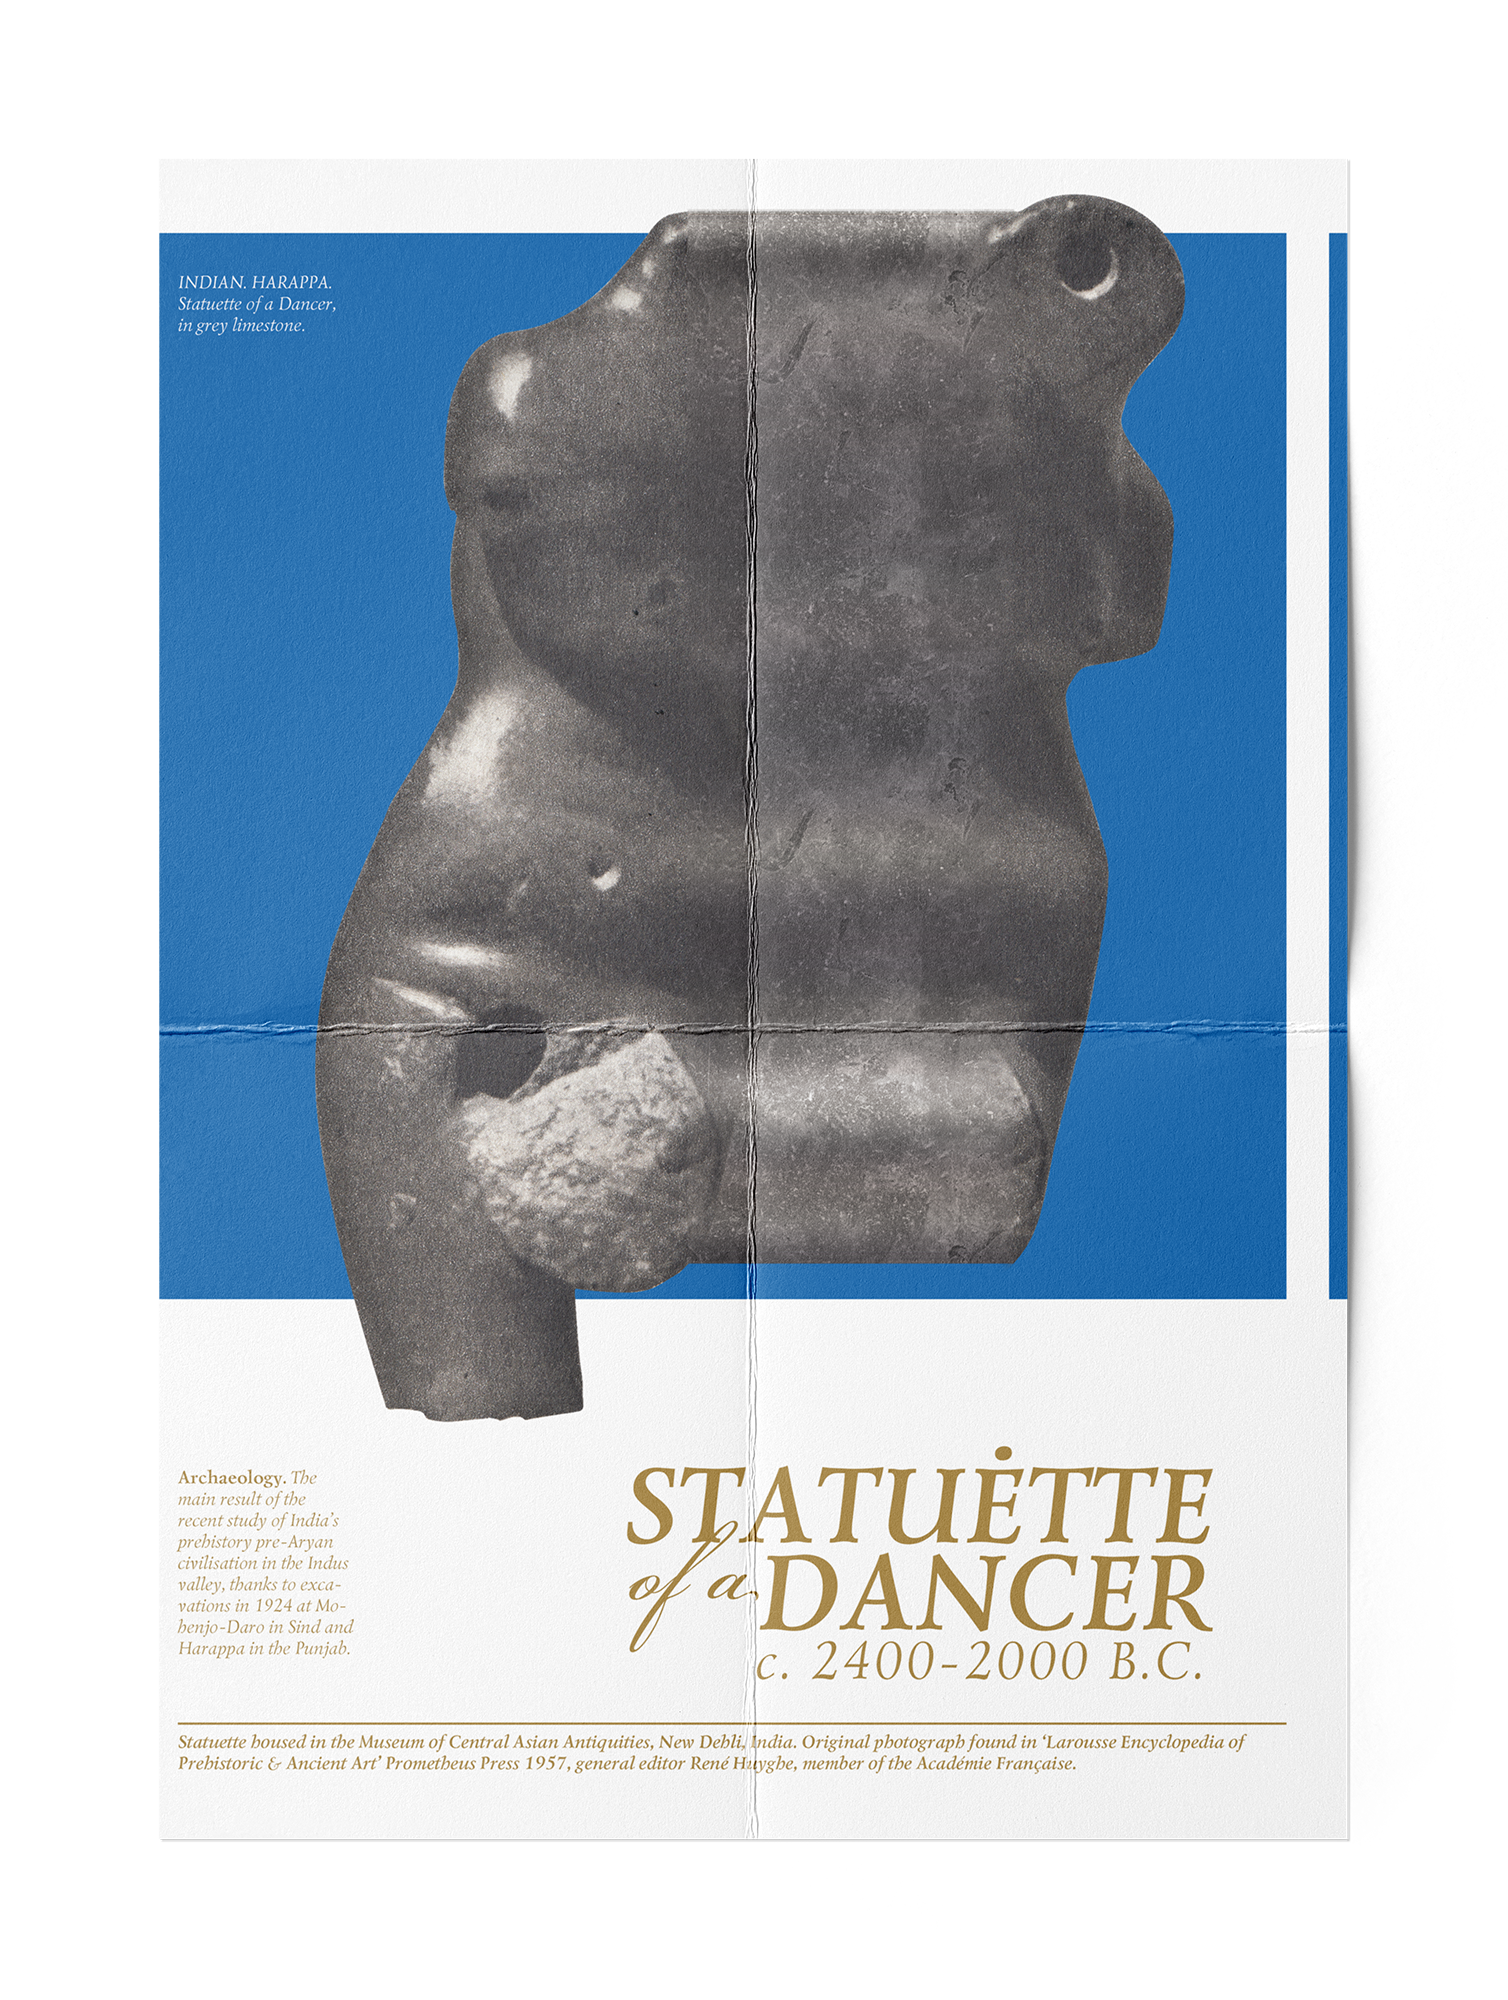 A poster, the main image being a black and white grainy photo of a smooth statuette from Harappa, India. The statuette has lost its legs from damage, and its face is a small hole. The figure is smooth and curvaceous, and is set on a sky blue background. The lower section of the poster has the tittle 'Statuette of a Dancer c. 2400-2000 B.C.' and has a little accompanying text, all printed in gold.